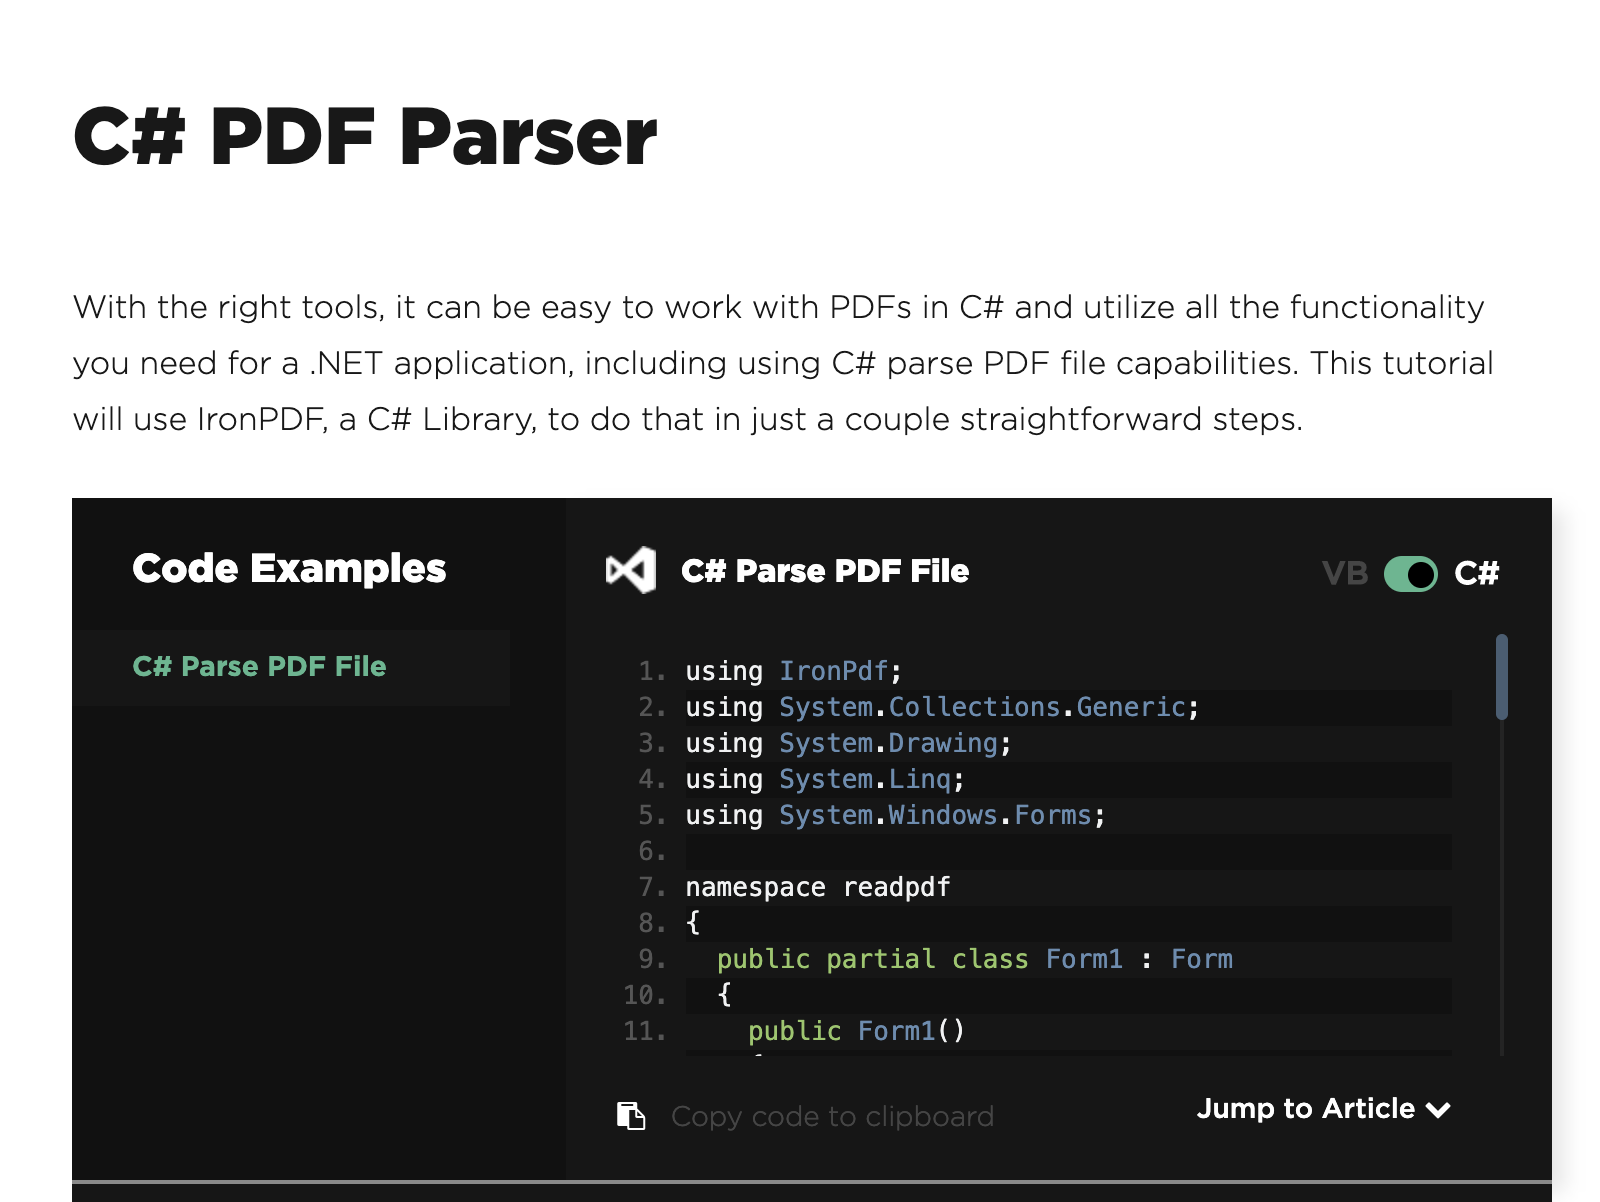 C# PDF Parser full screenshot